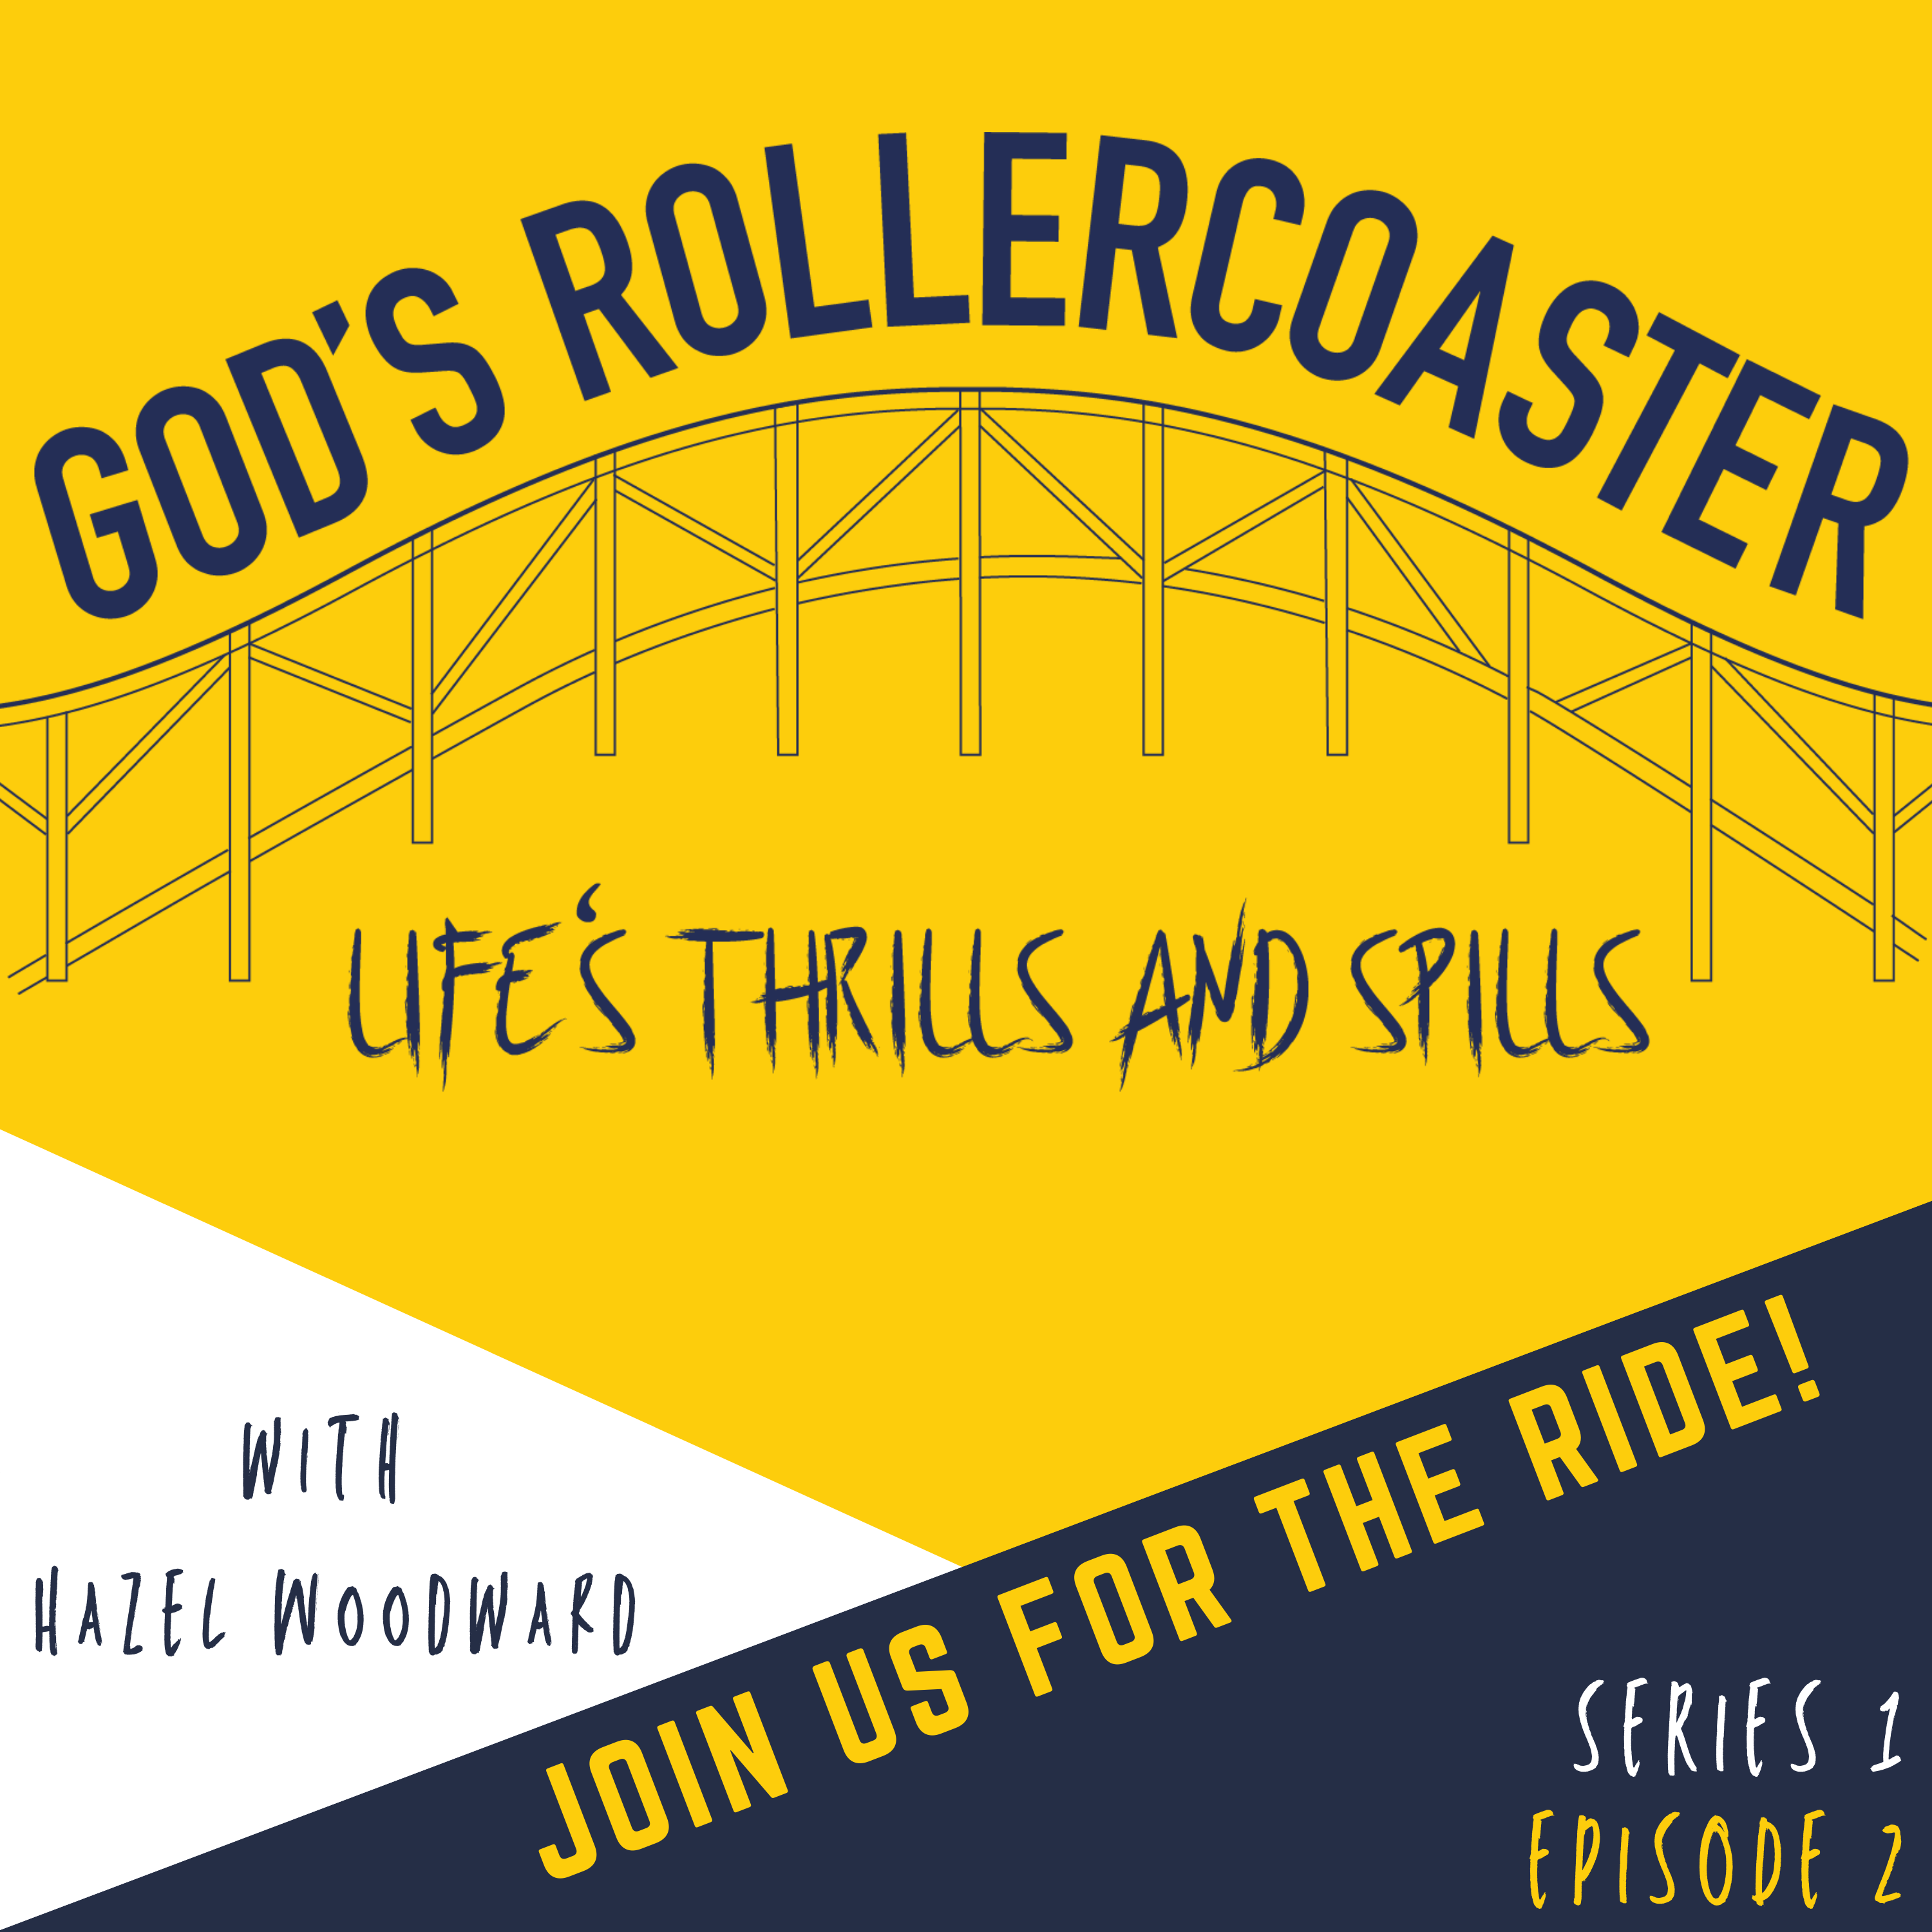 Series 1: Episode 2 – The Power of God